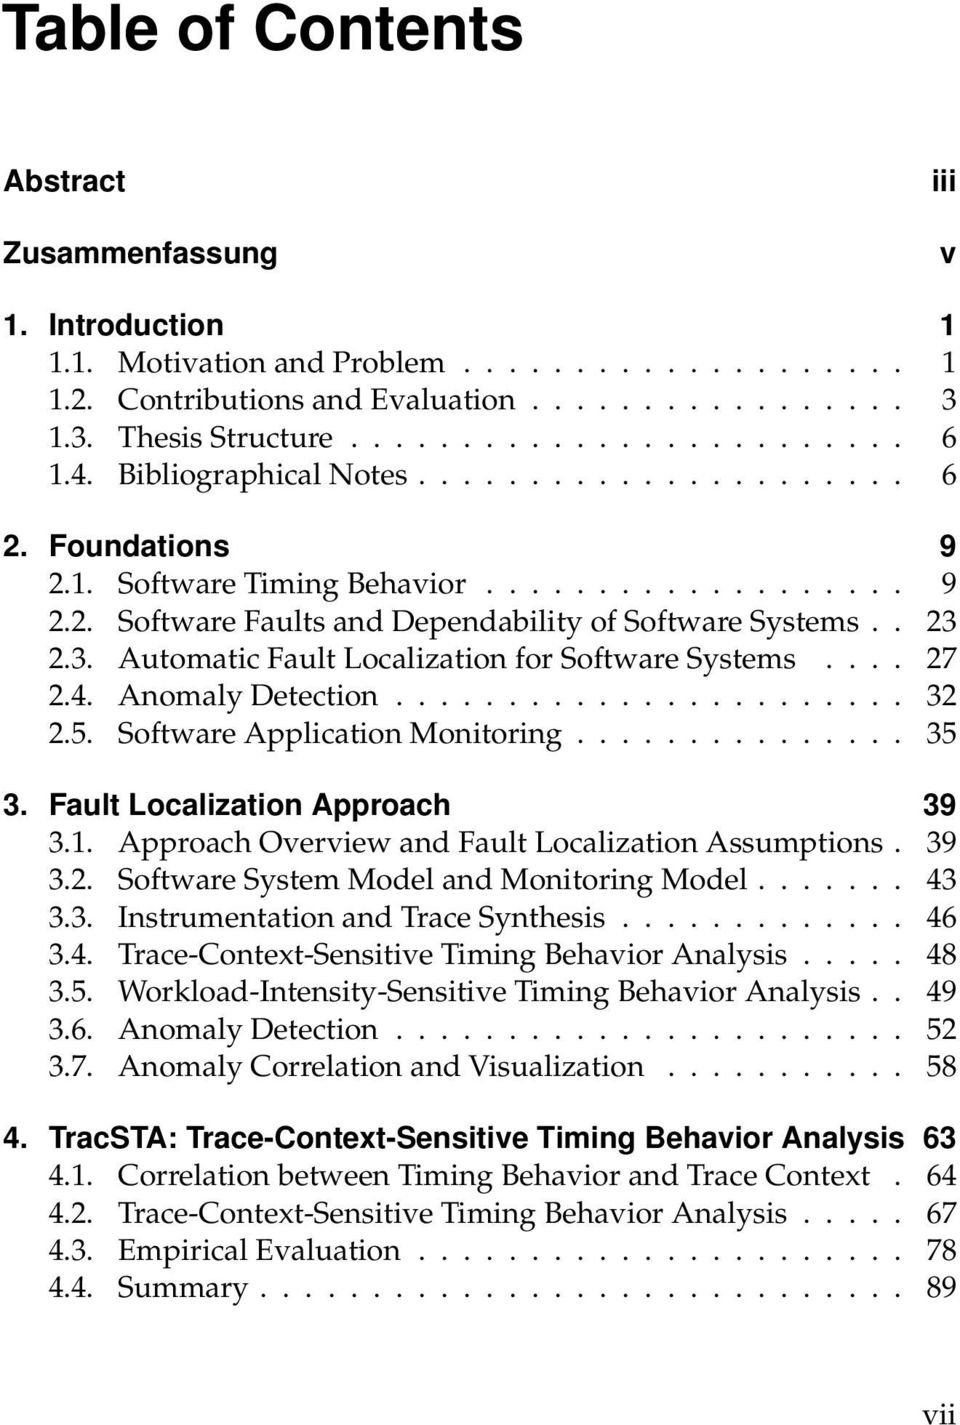 2.3. Automatic Fault Localization for Software Systems.... 27 2.4. Anomaly Detection....................... 32 2.5. Software Application Monitoring............... 35 3.